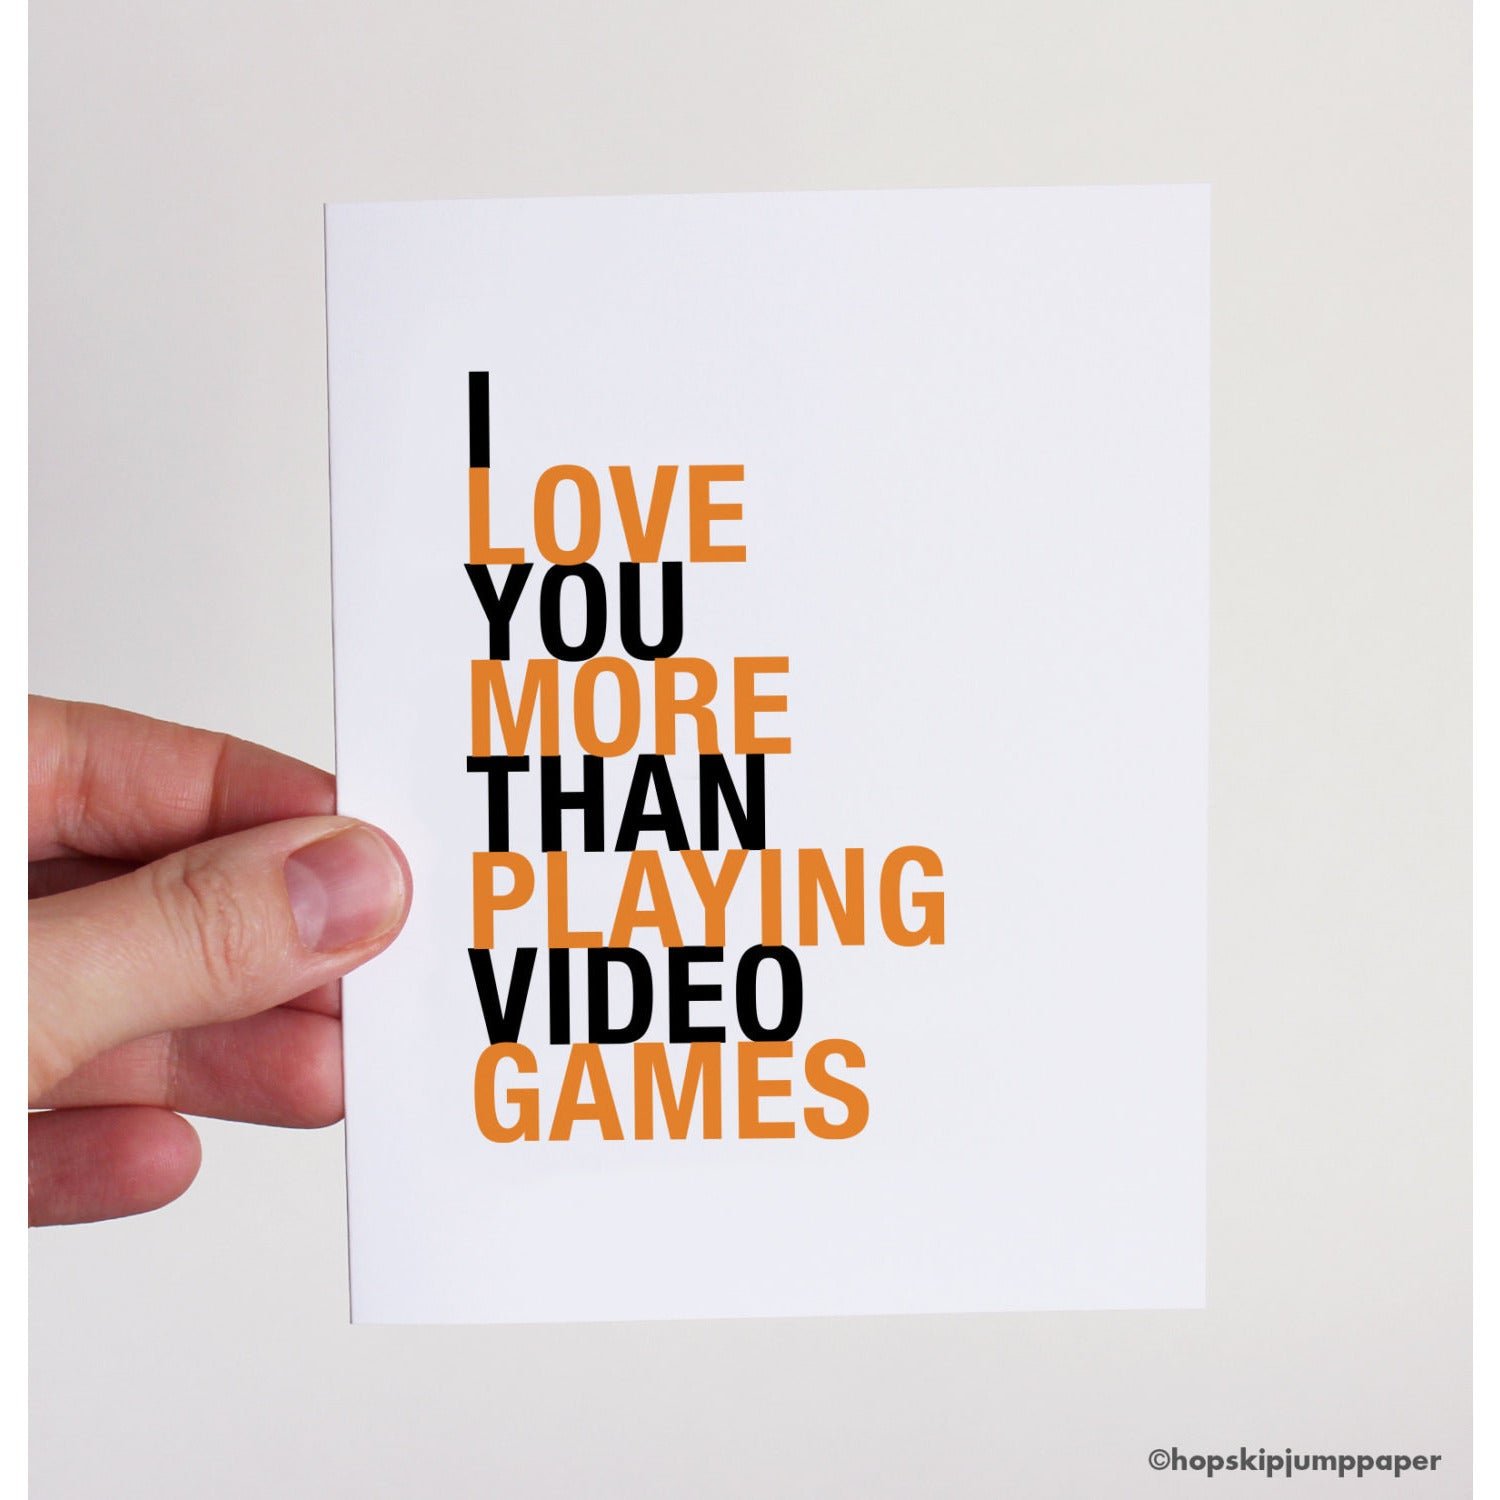 I Love You More Than Playing Video Games...